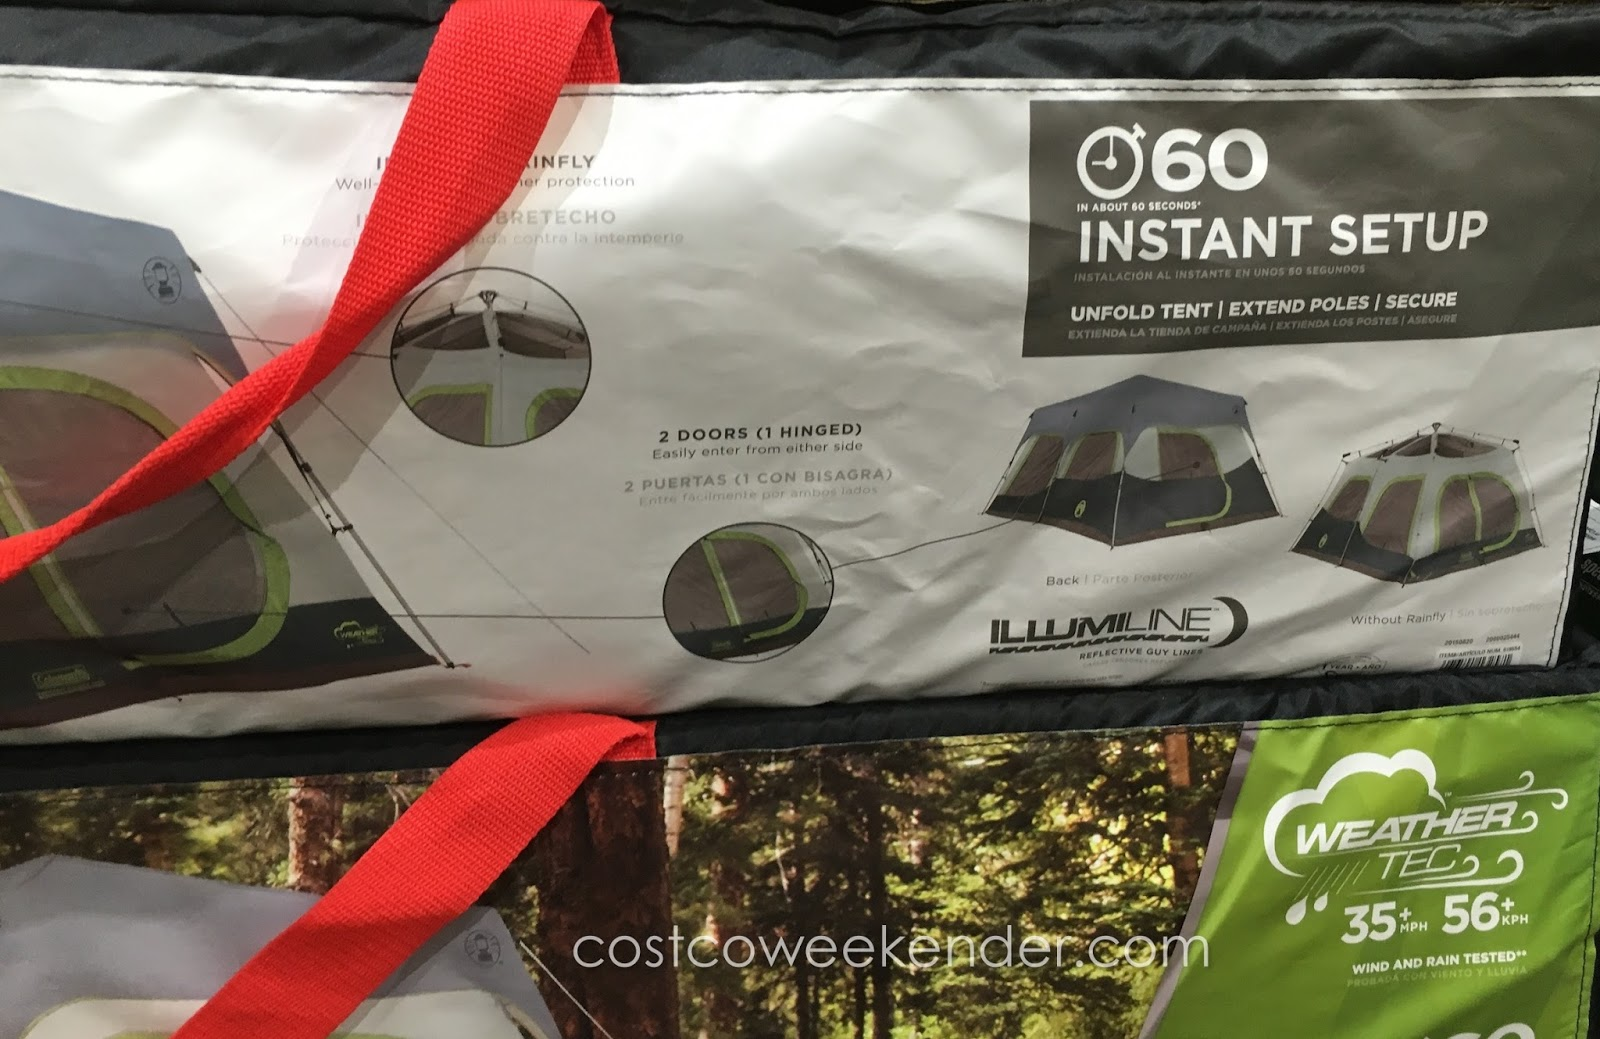 Enjoy the outdoors with the Coleman 10-Person Instant Cabin Tent & Coleman 10-Person Instant Cabin Tent | Costco Weekender